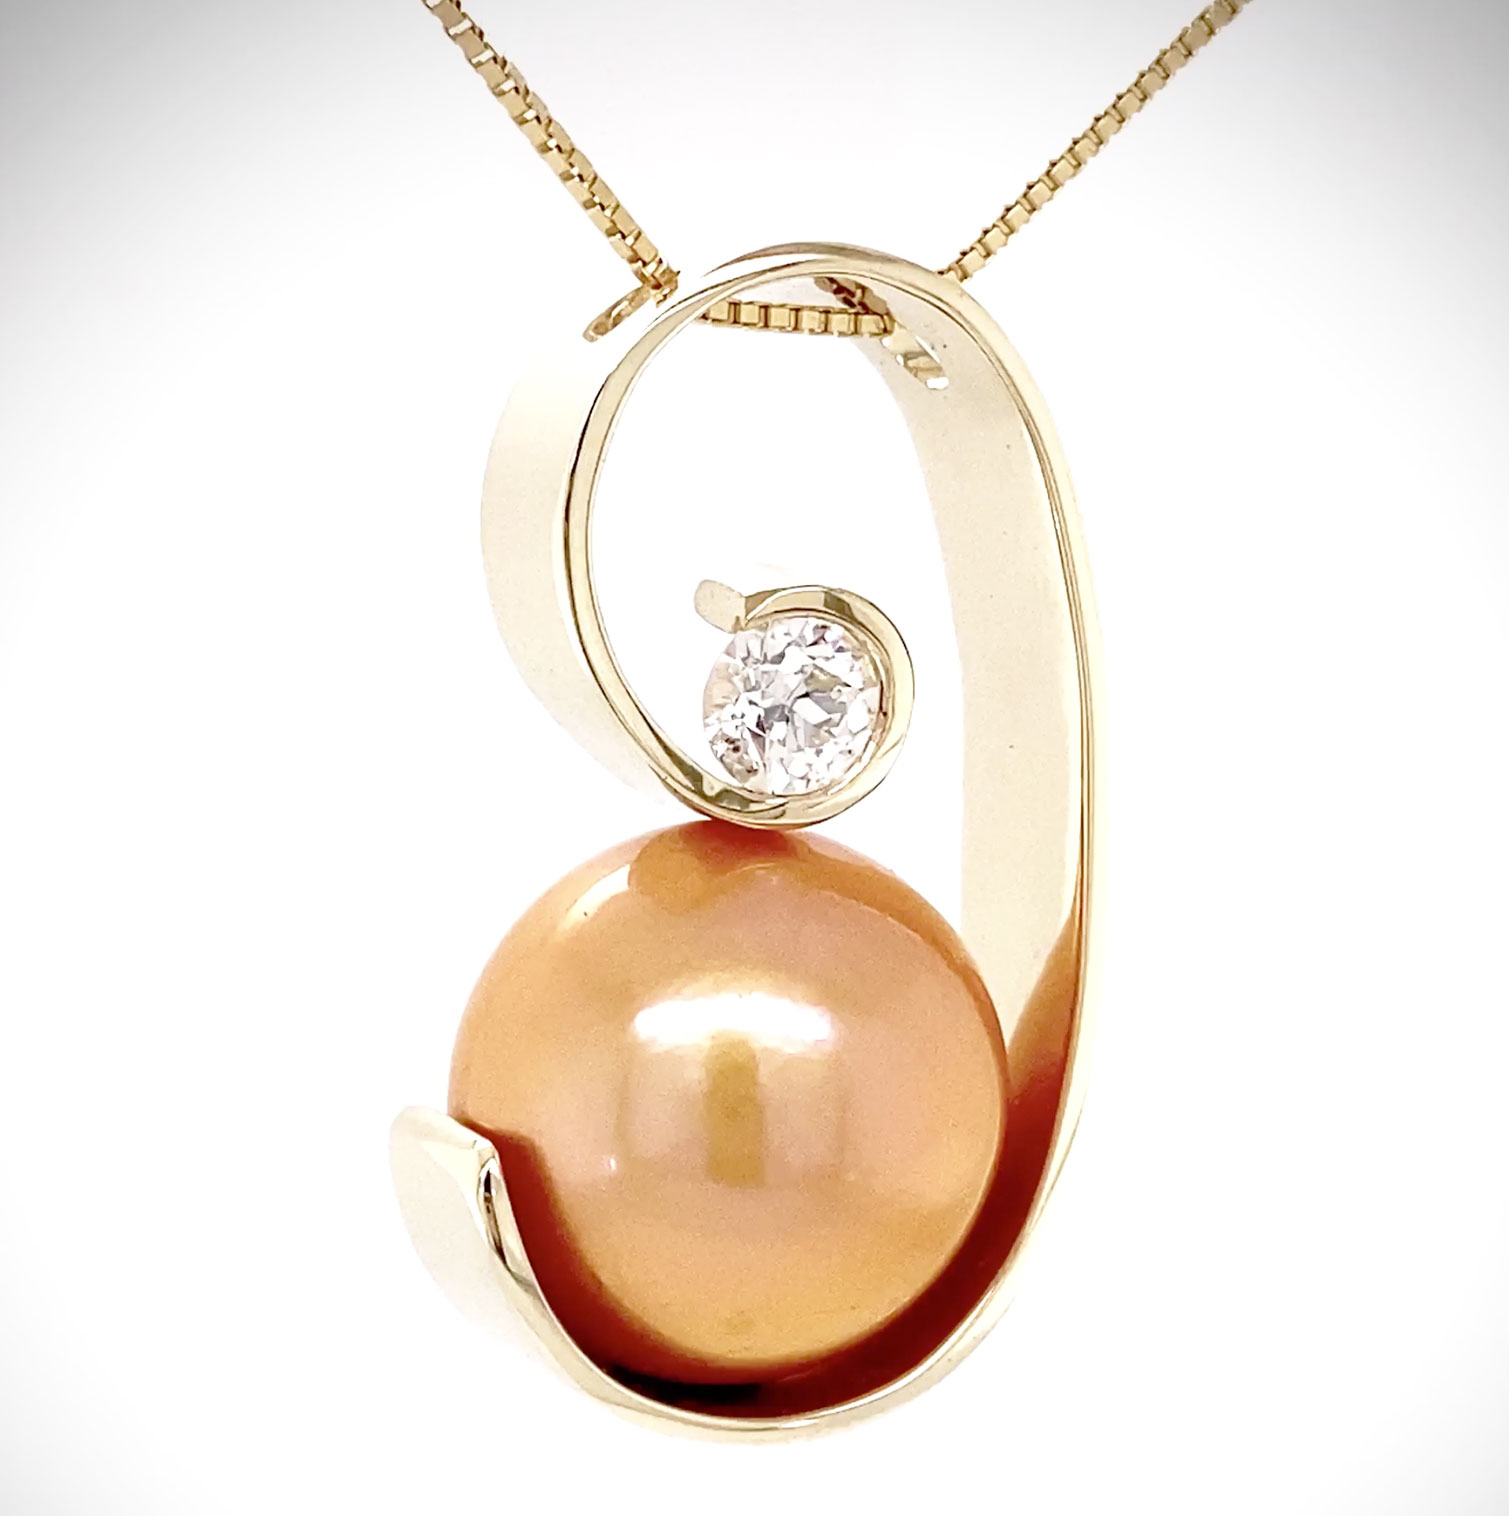 One-of-a-kind hand-forged with one piece of 14K yellow gold, we cradled this rare 15mm Golden South Sea Pearl and accented it with a .30ct round brilliant Diamond